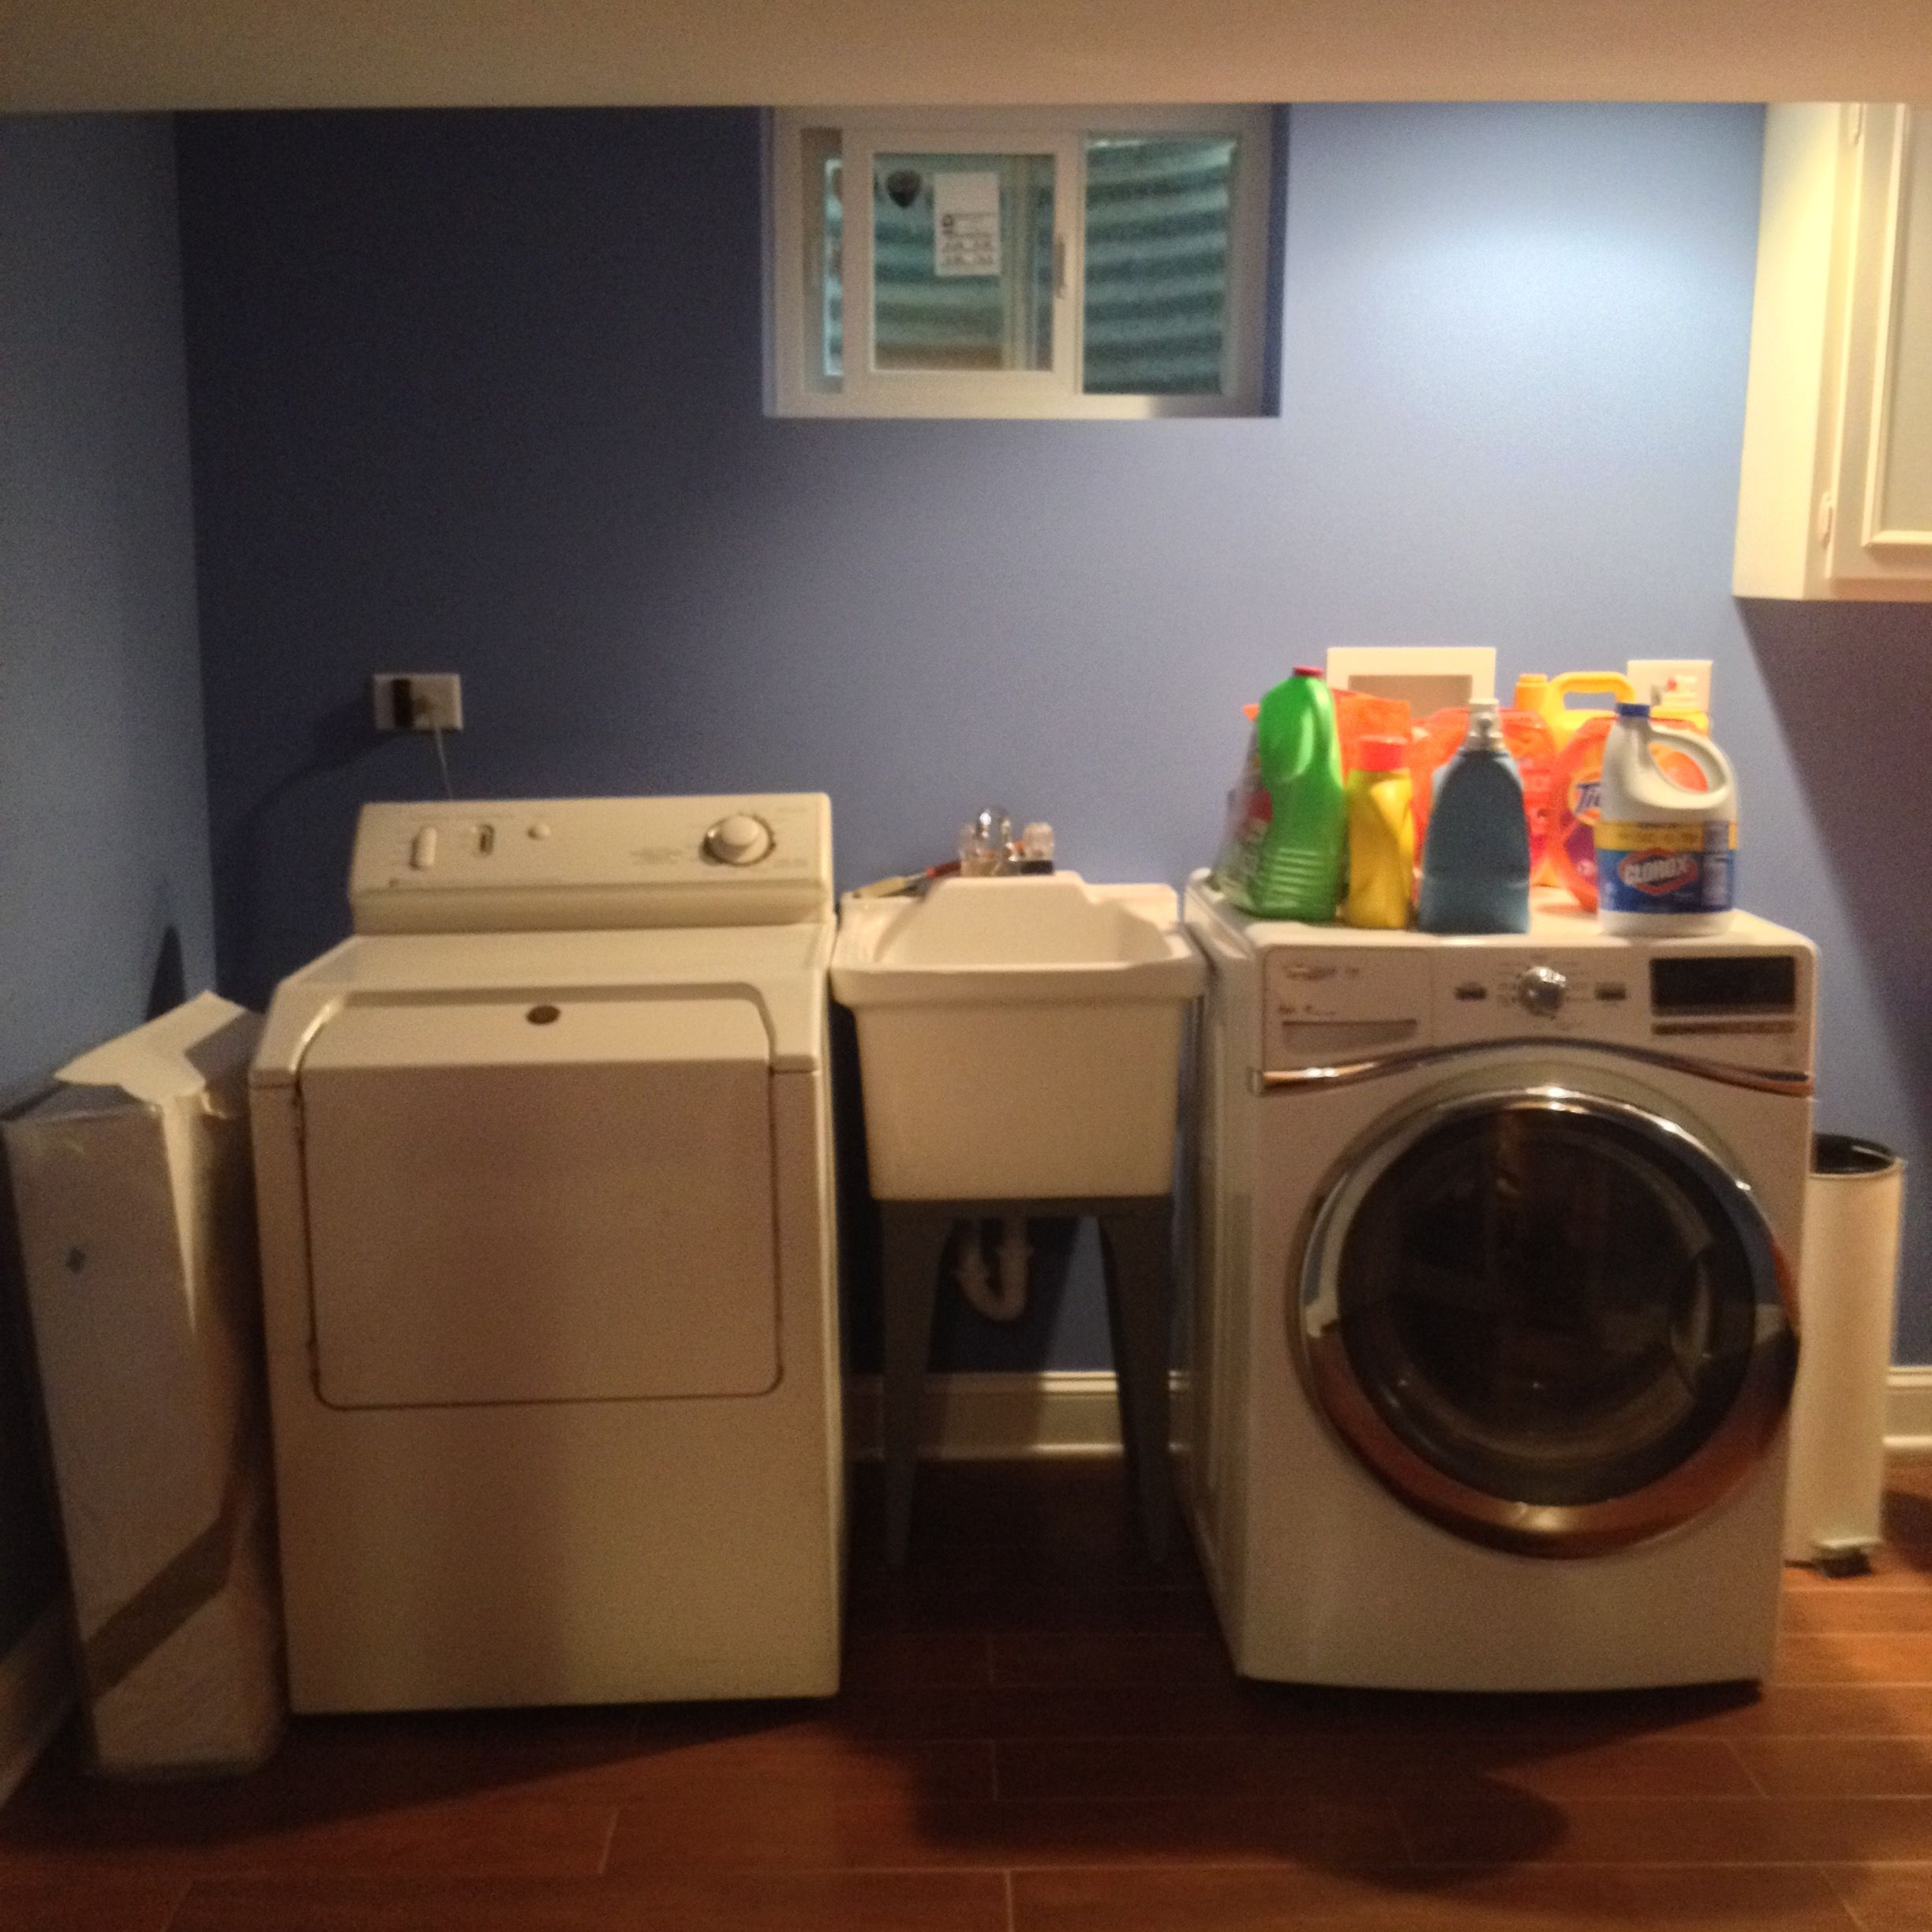 Laundry in the basement.  No more doing laundry in the kitchen.